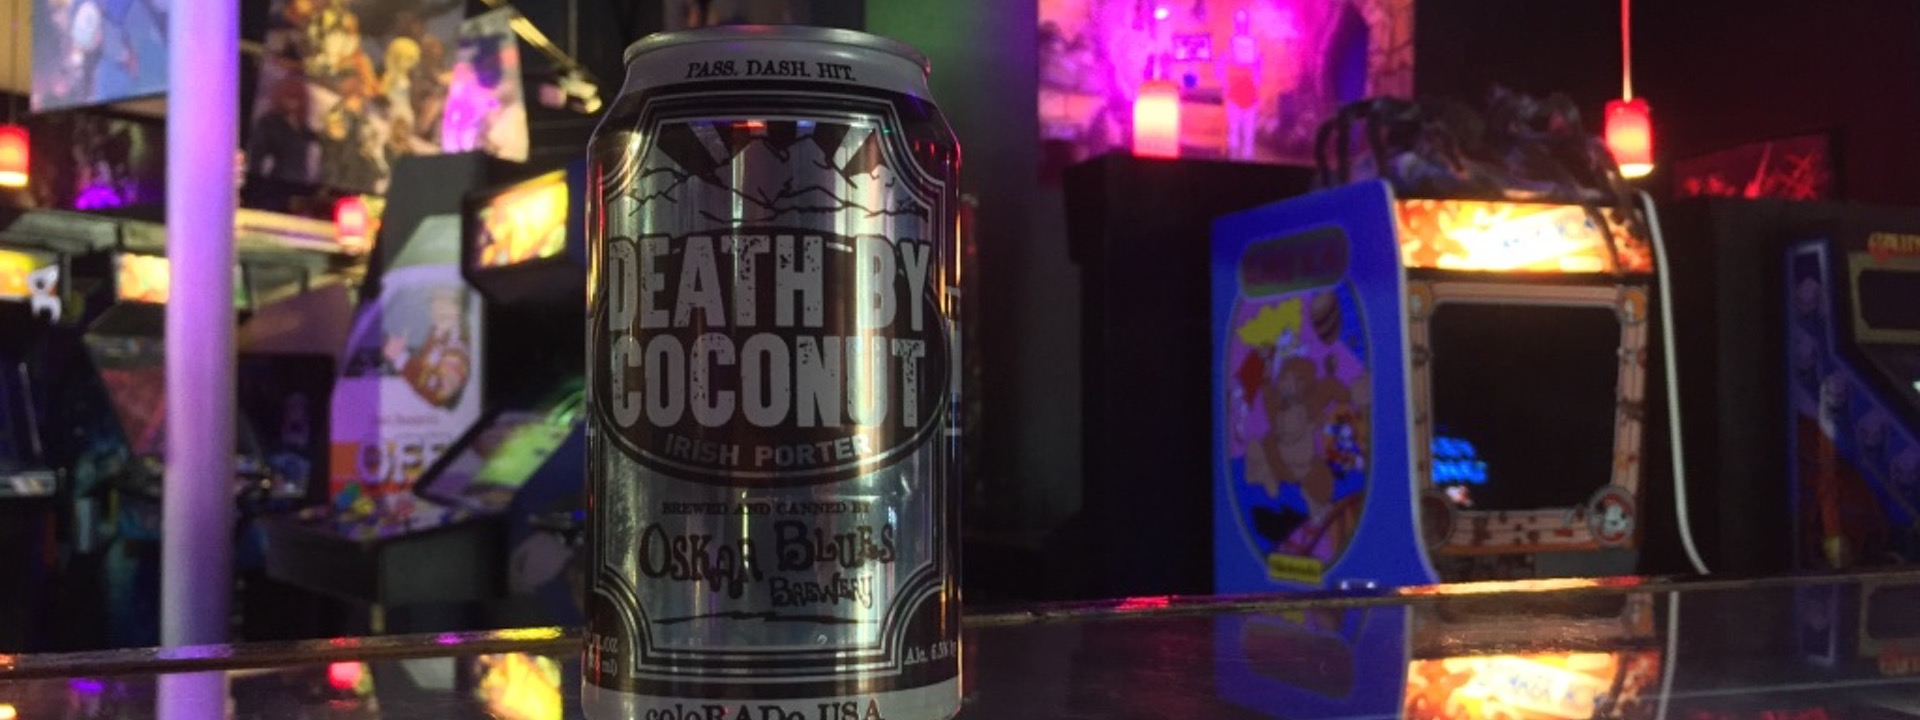 Hero deathcoconut